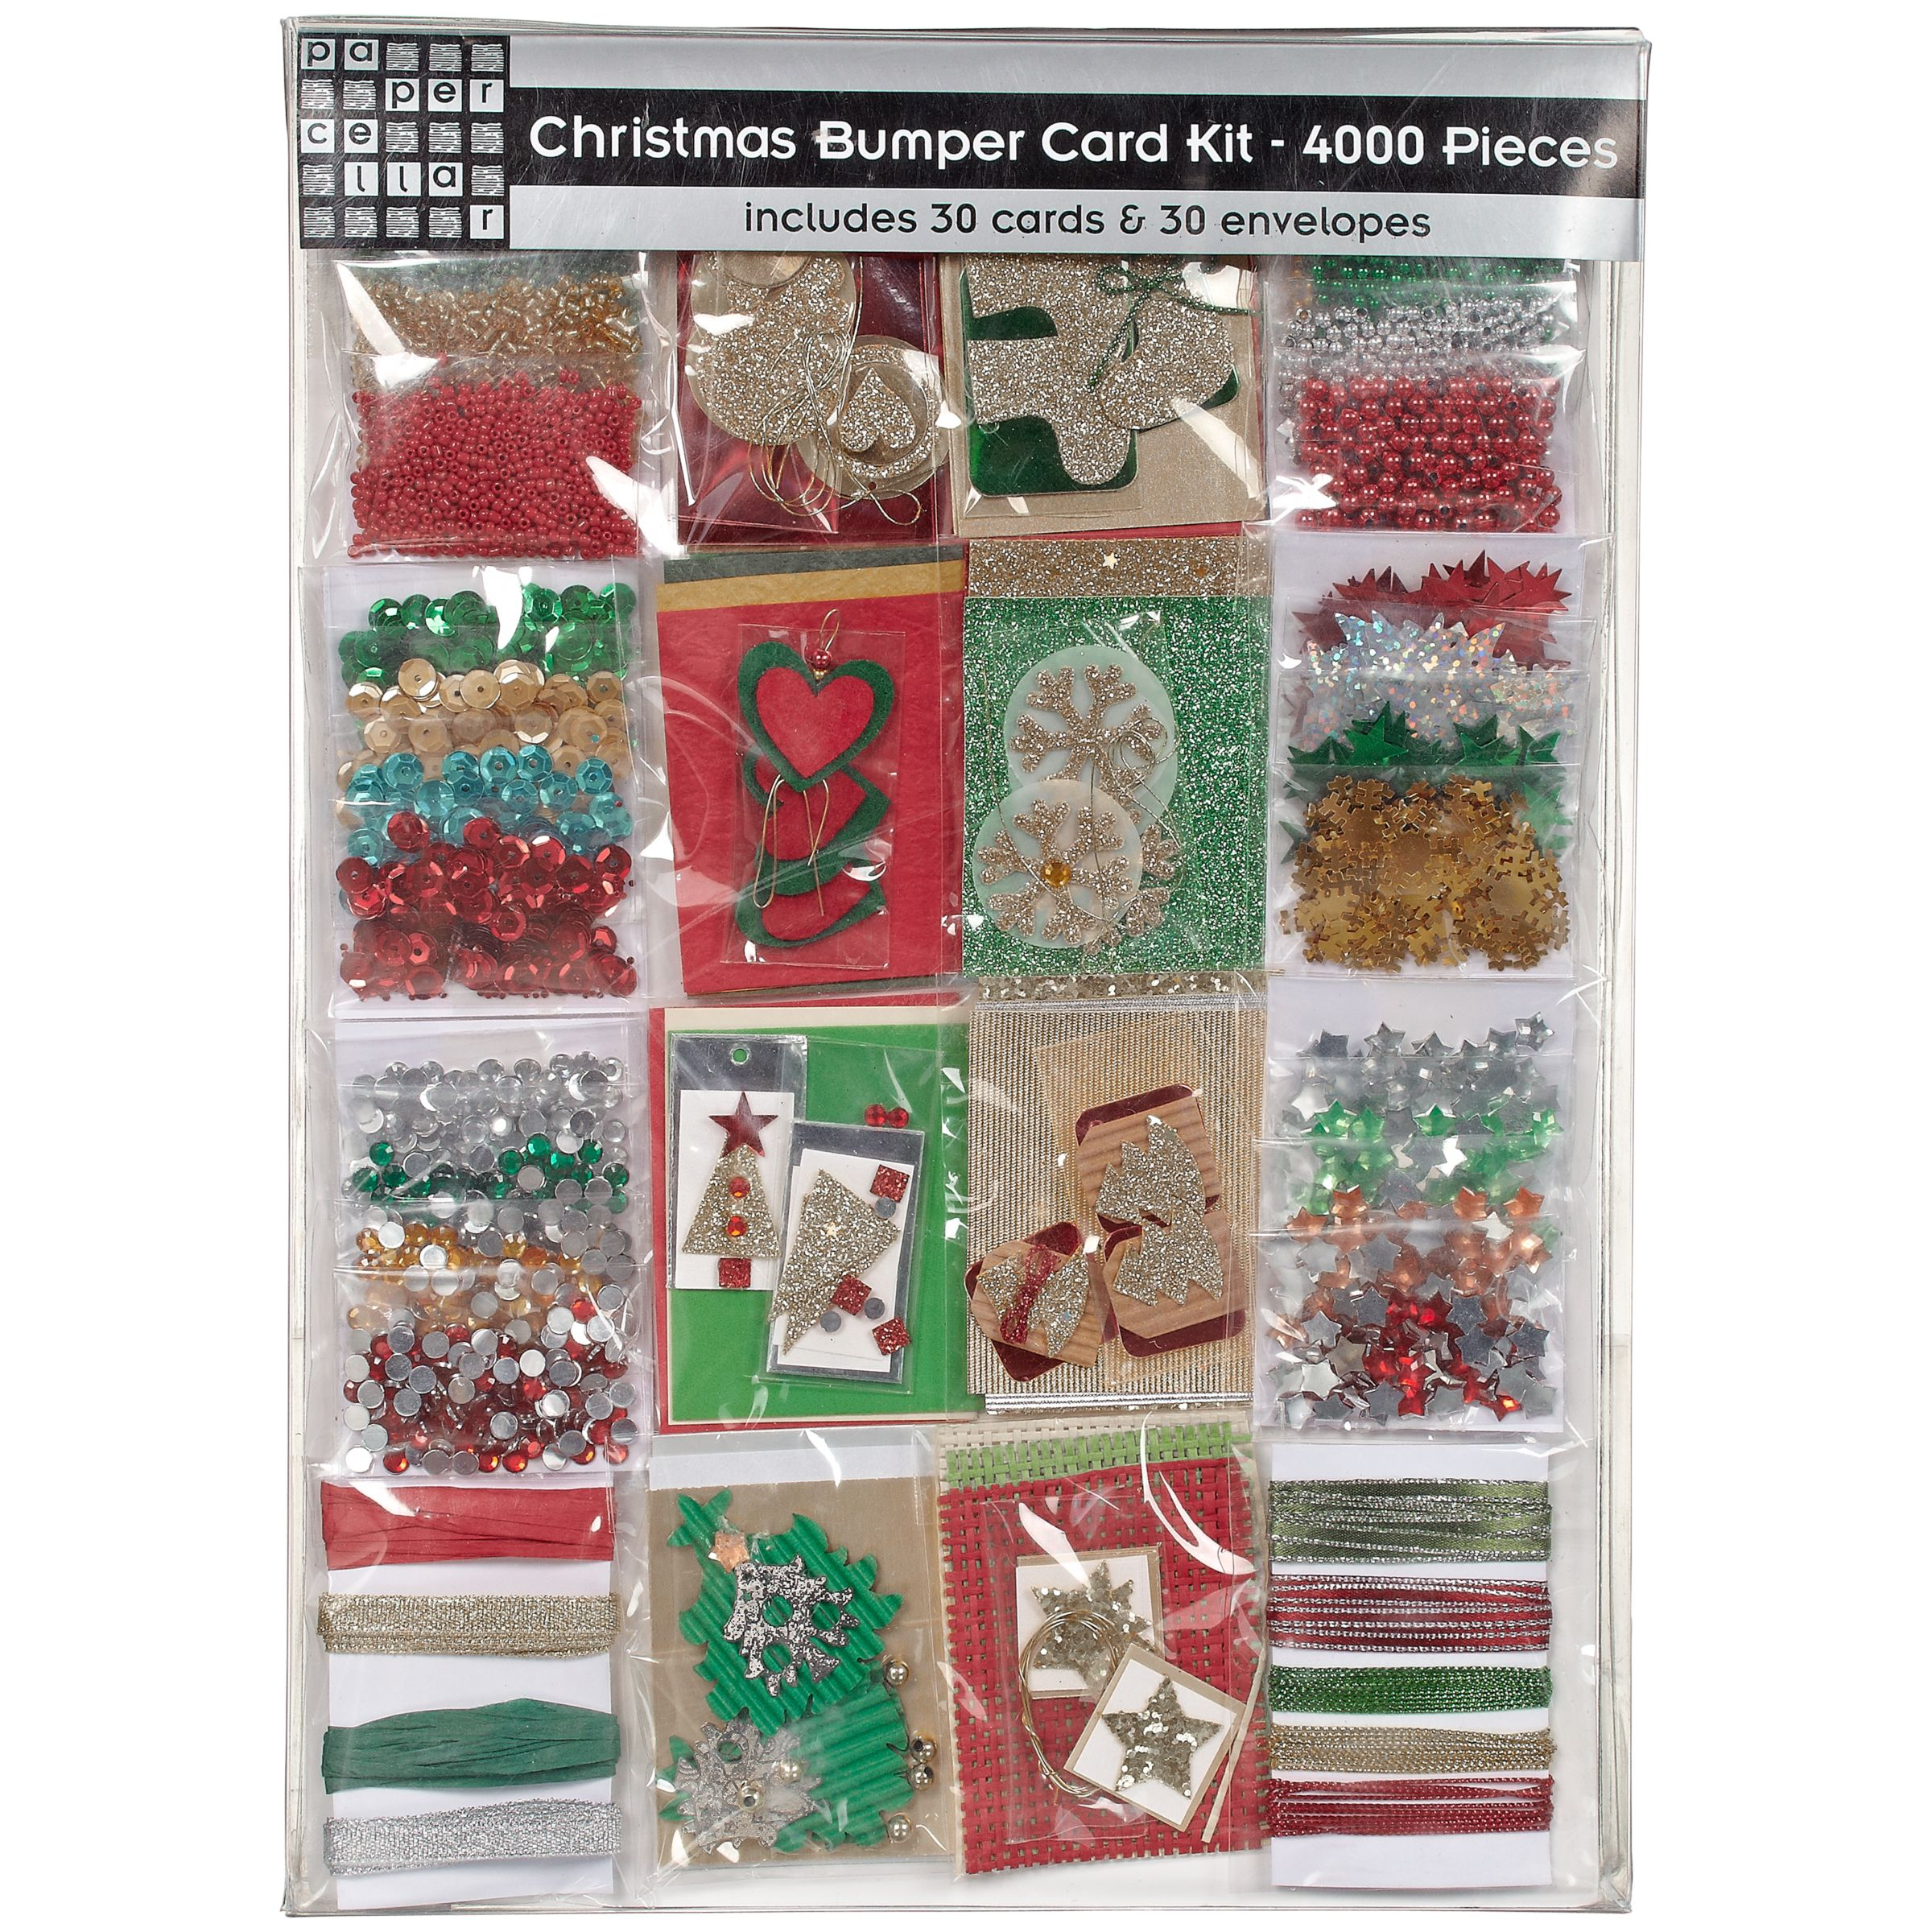 John Lewis Christmas Bumper Card Kit, 4000 Pieces, Red/Green